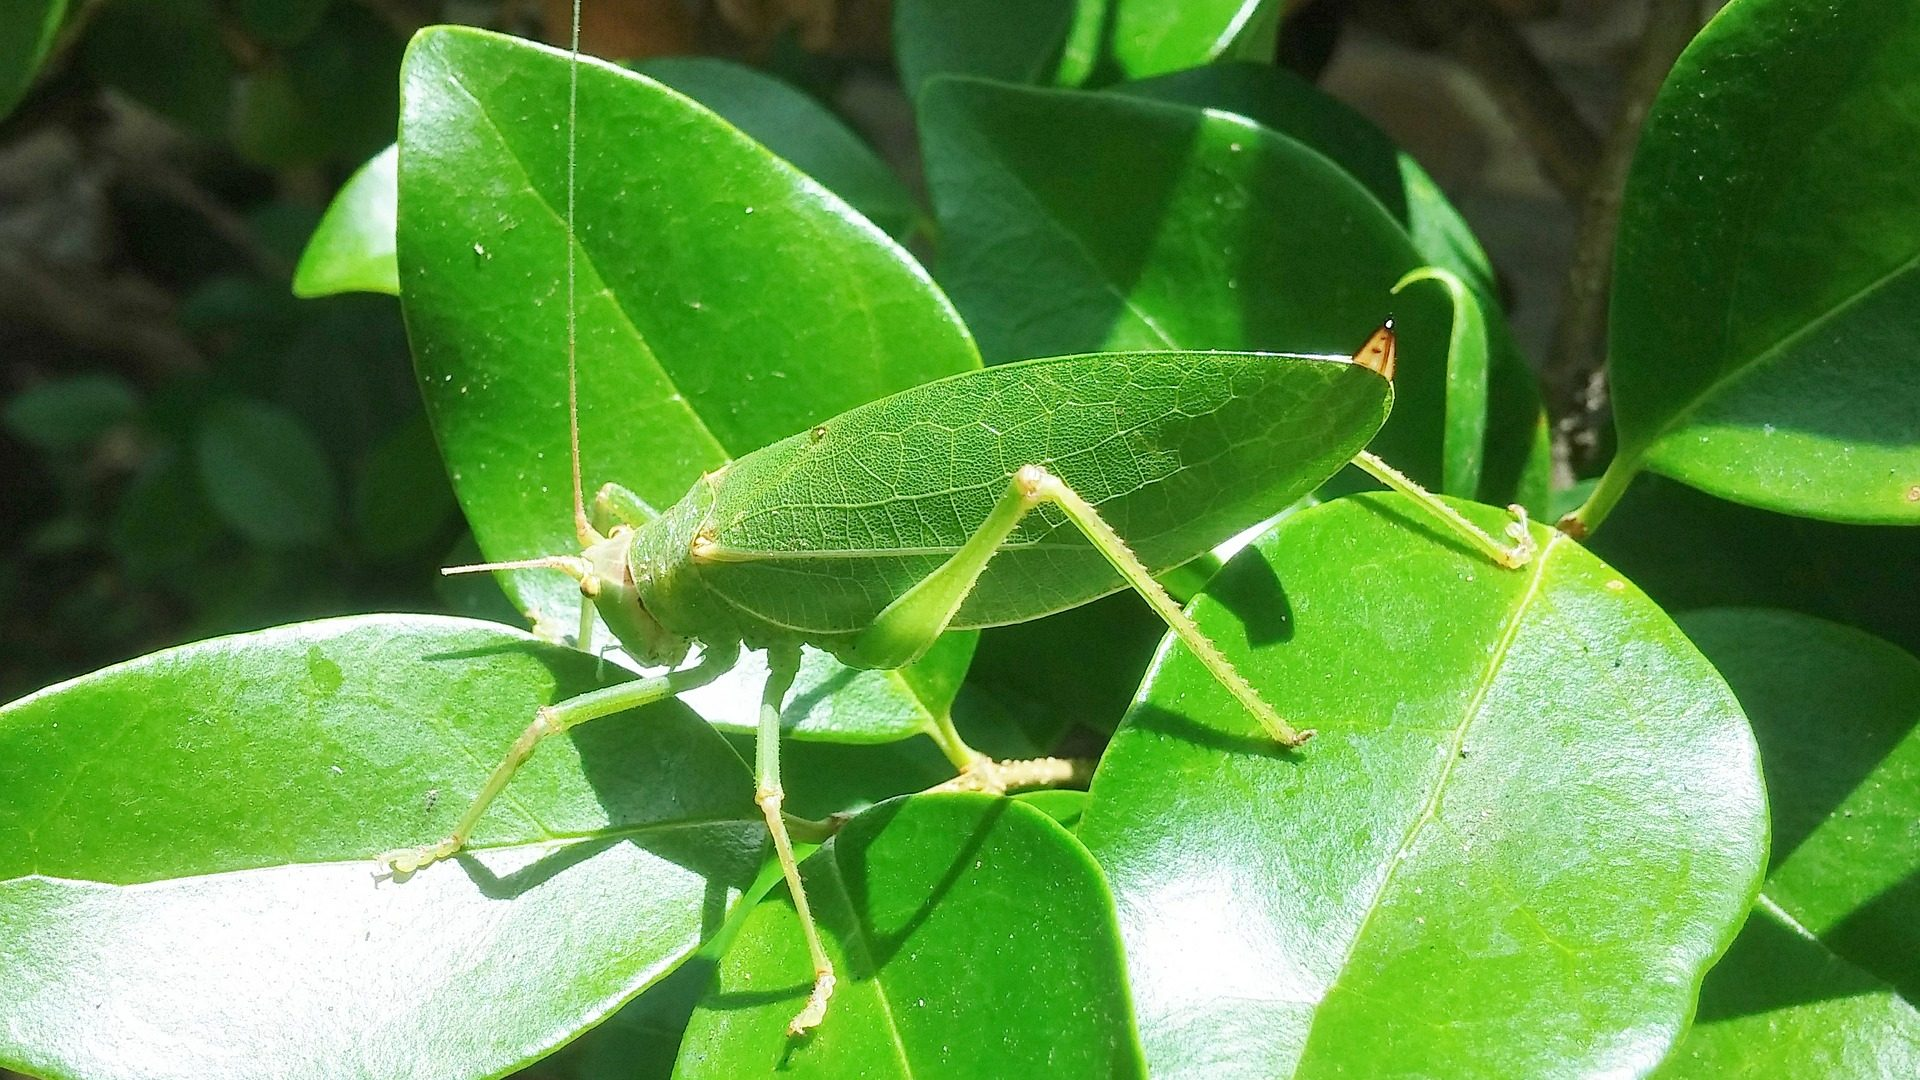 Image: leaf grasshopper insect mimicry